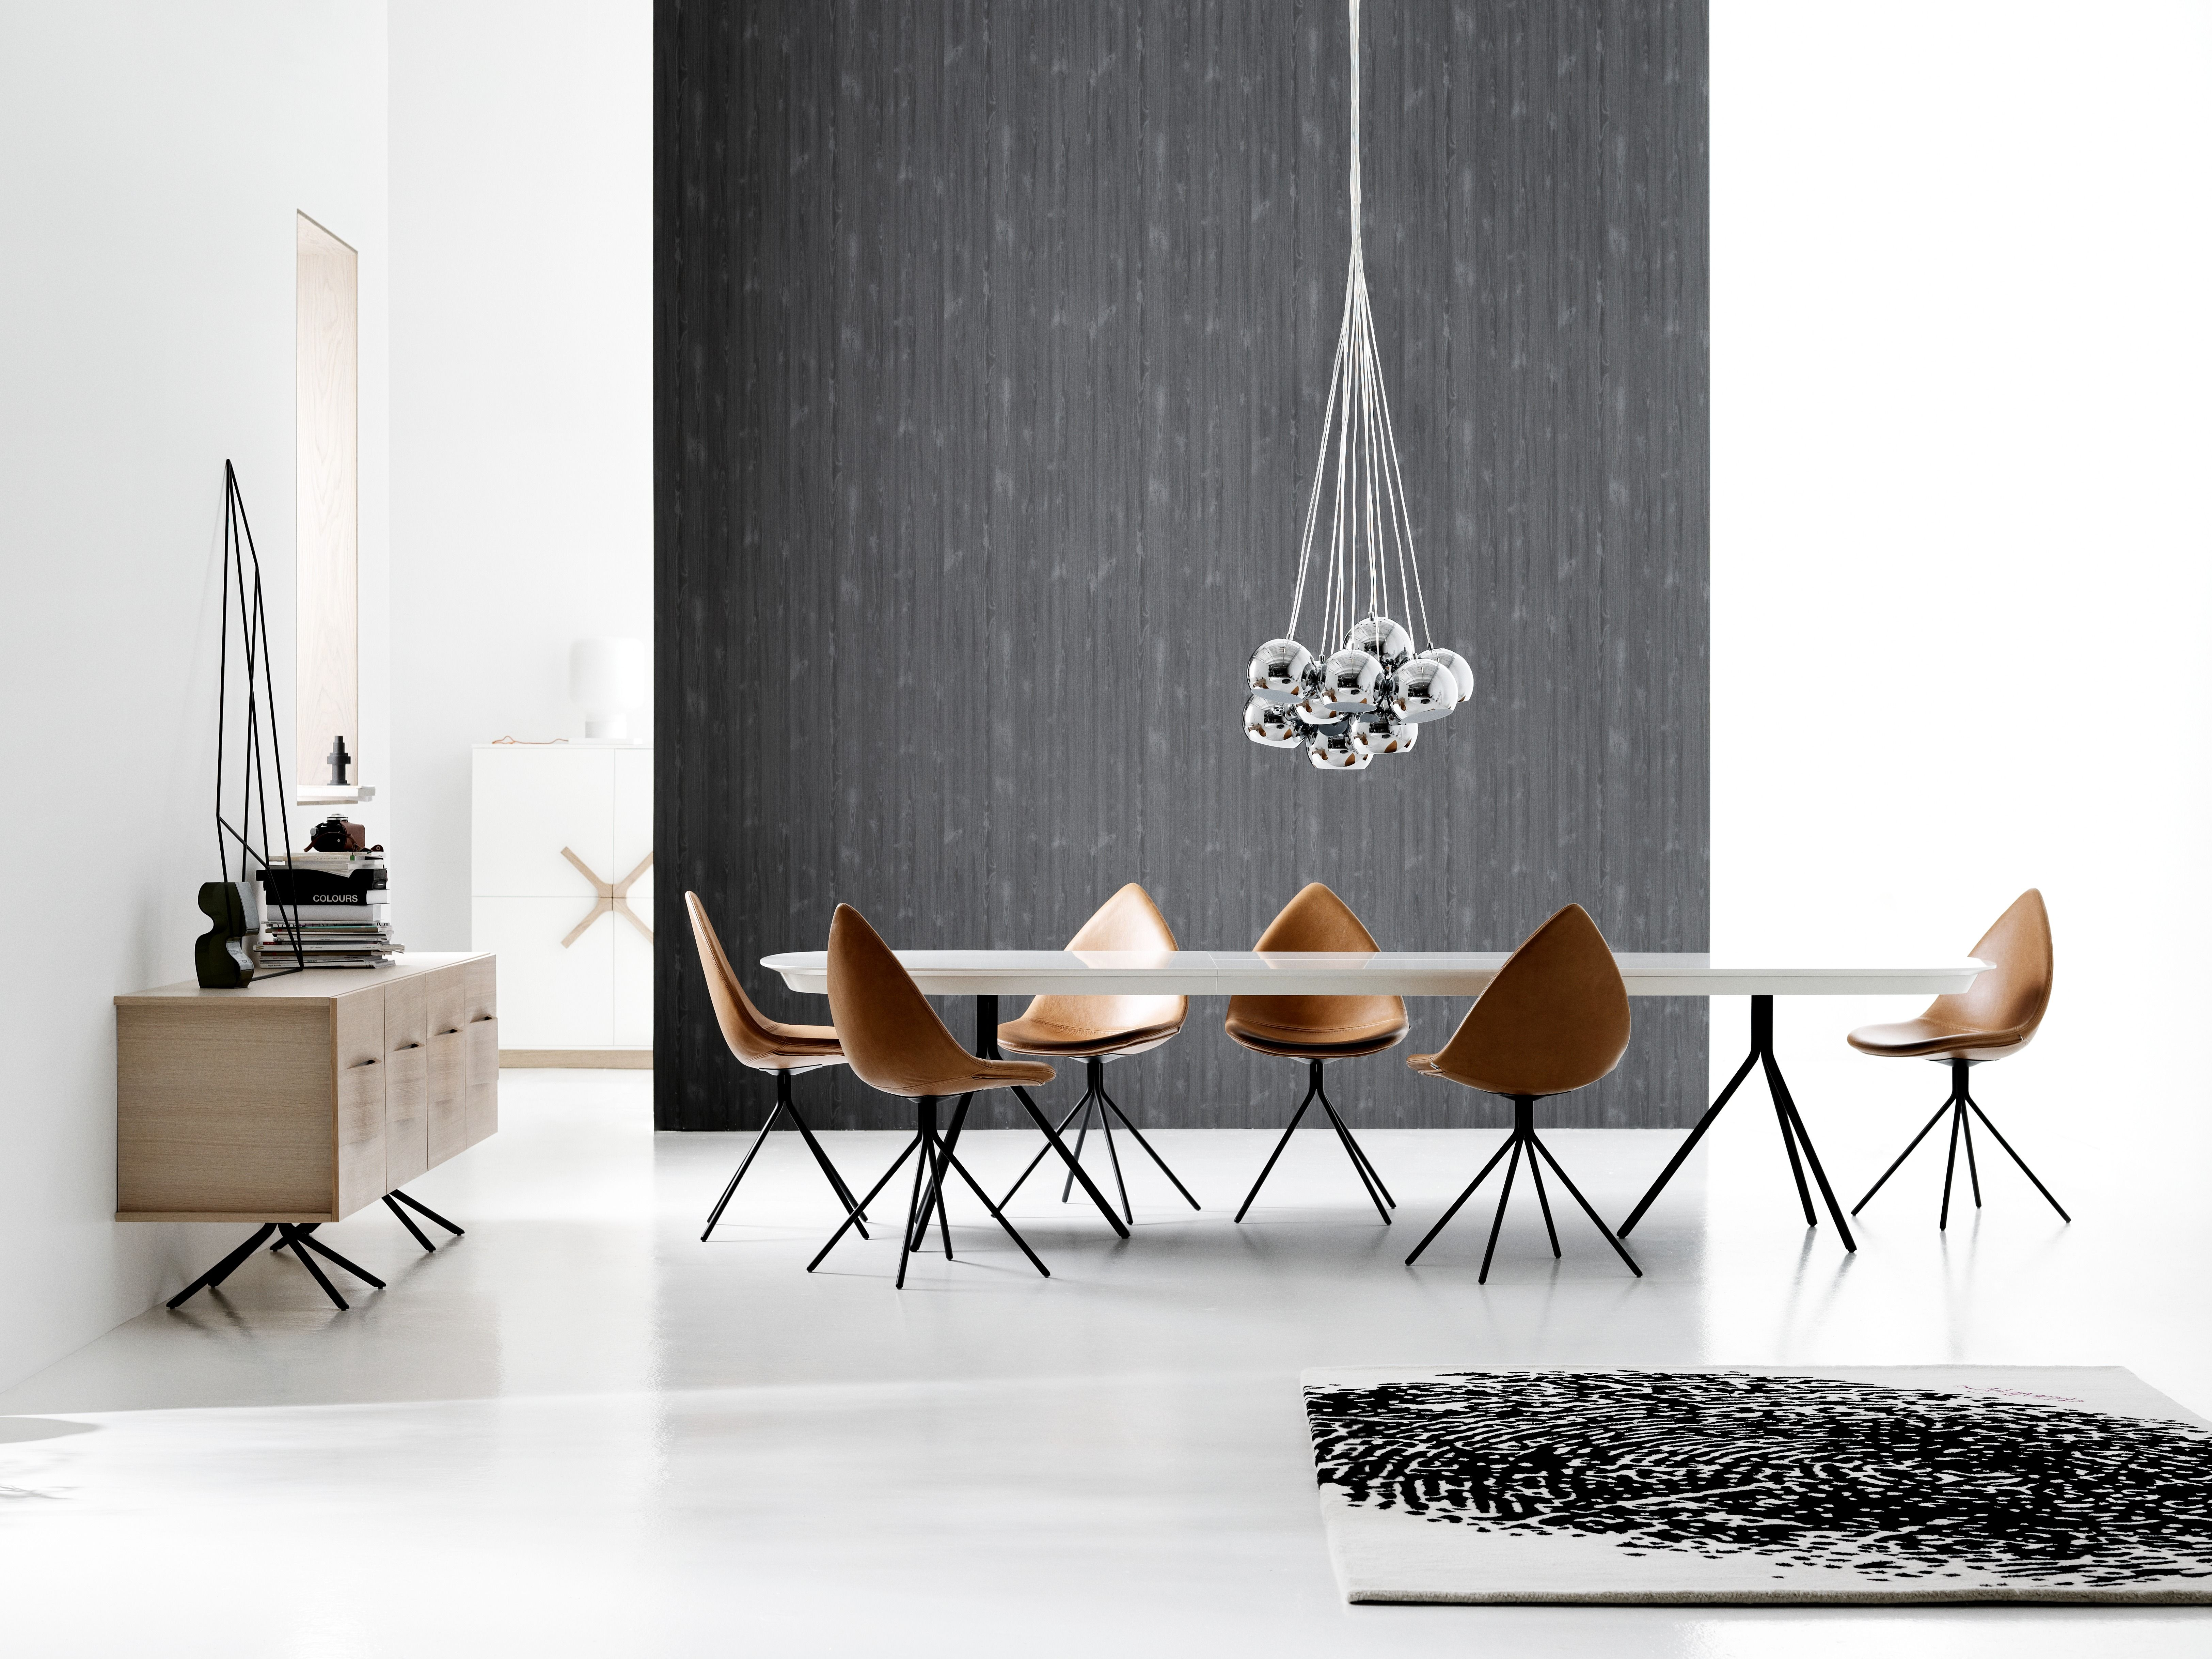 Dining In Scandinavian Style BoConcept Ottawa Set Designed By Karim Rashid